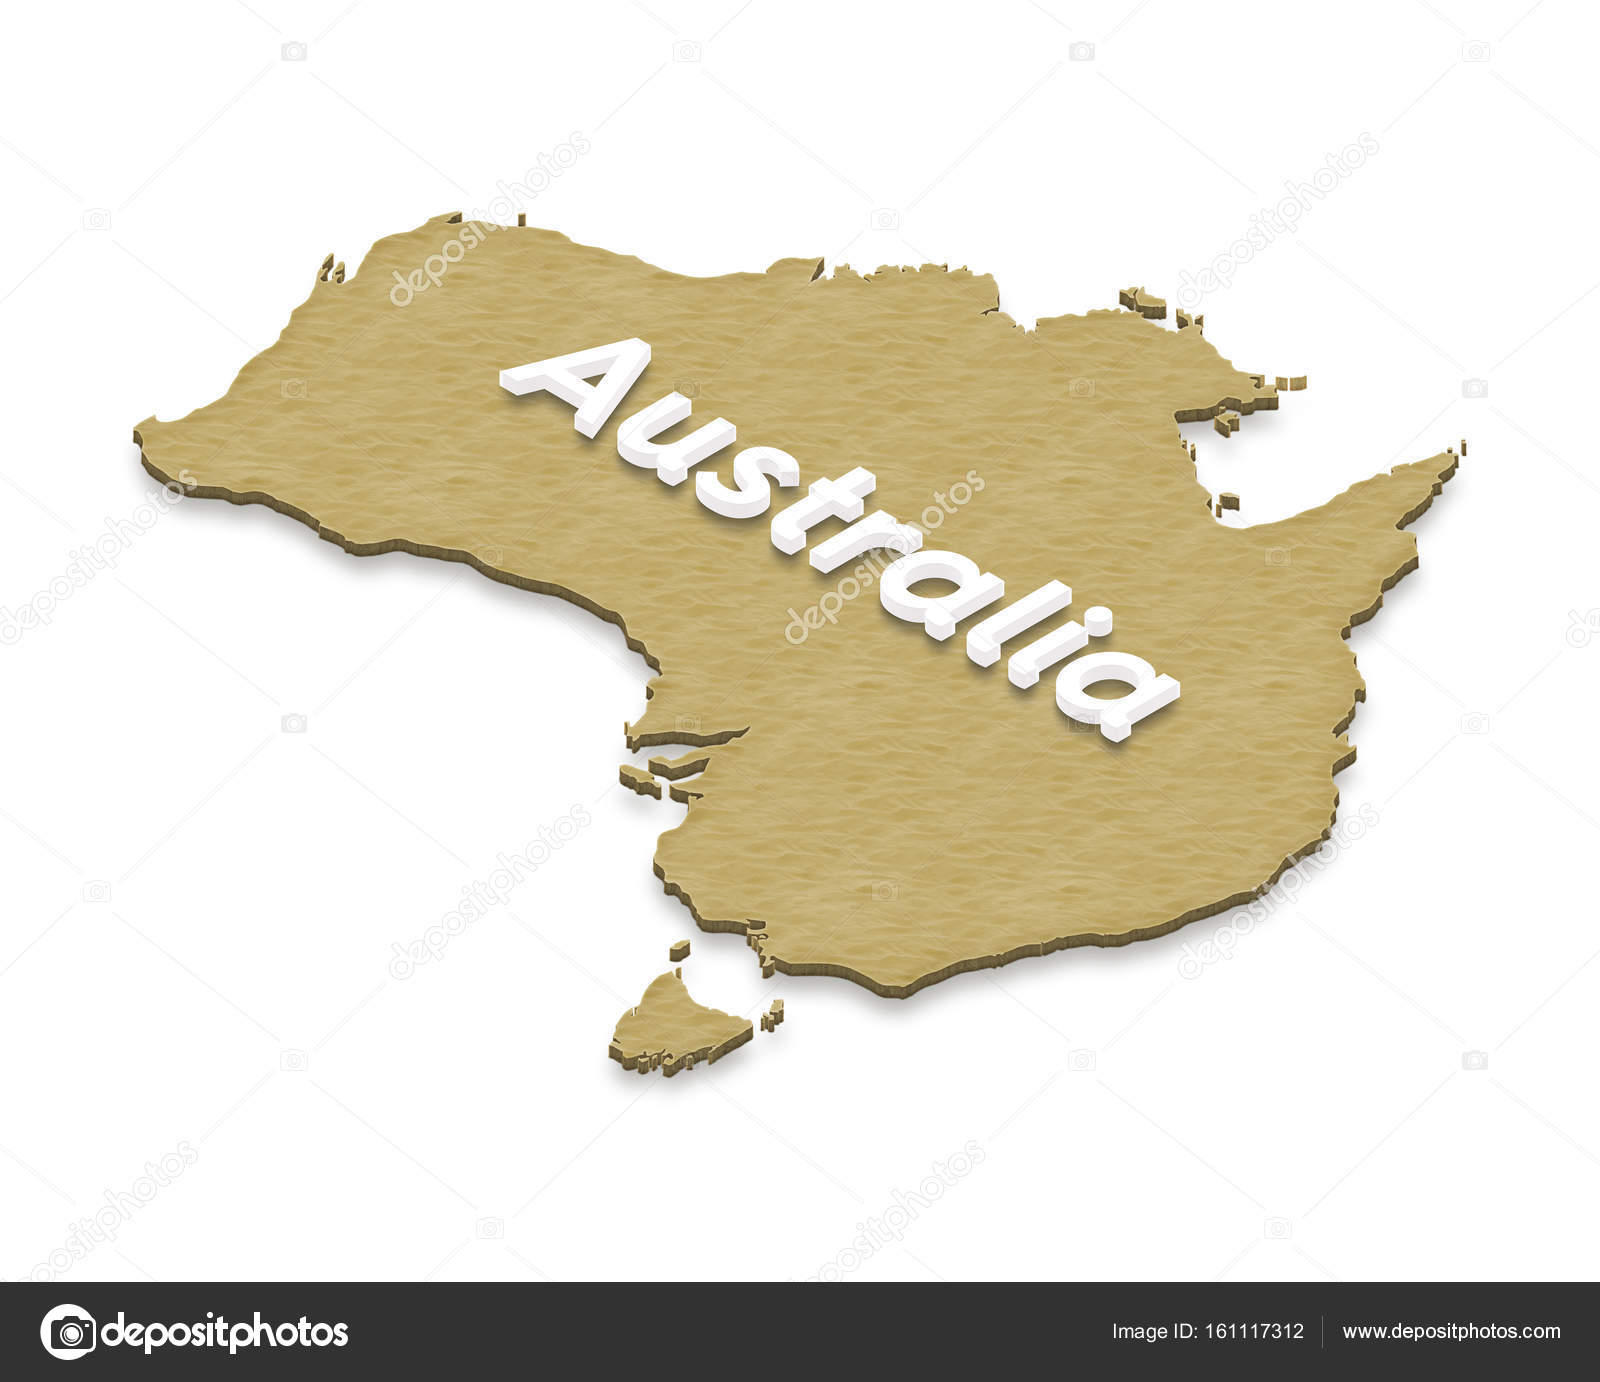 Map of australia 3d isometric illustration stock photo illustration of a sand ground map of australia on isolated background left 3d isometric projection with the name of continent photo by sanches812 gumiabroncs Gallery